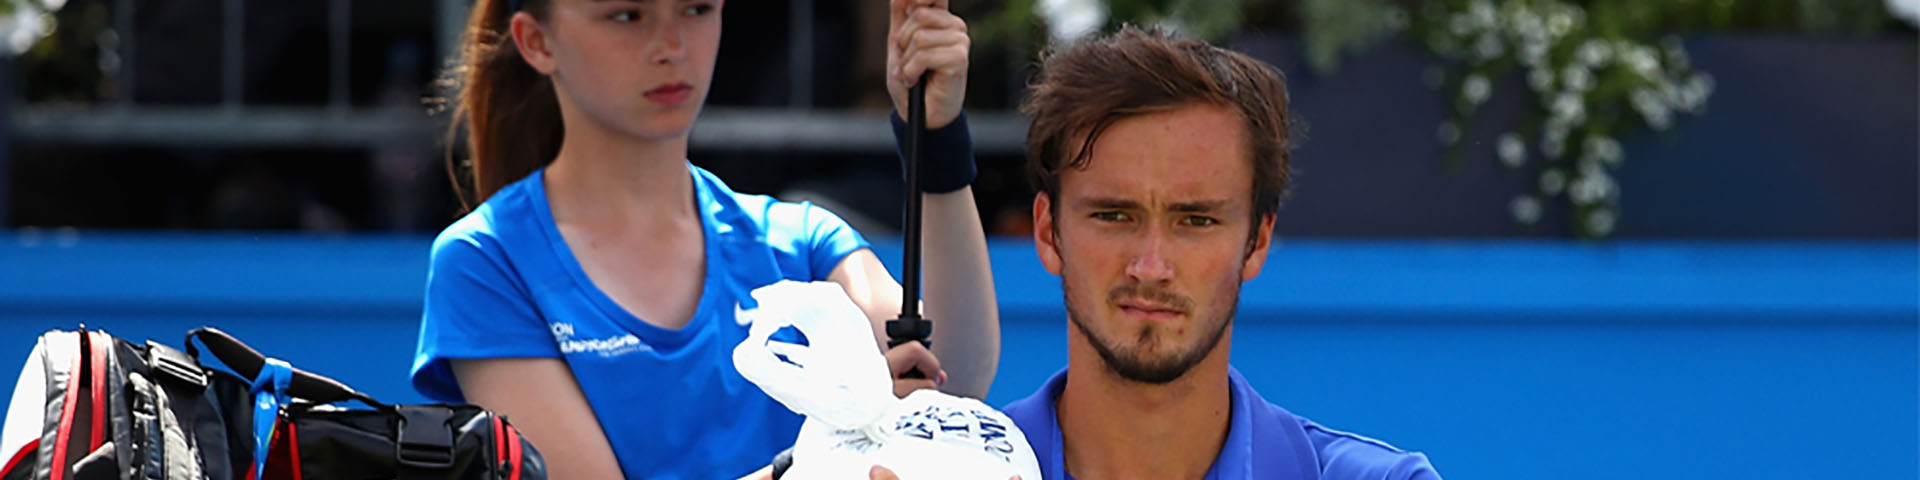 Daniil Medvedev receiving treatment for an injury.